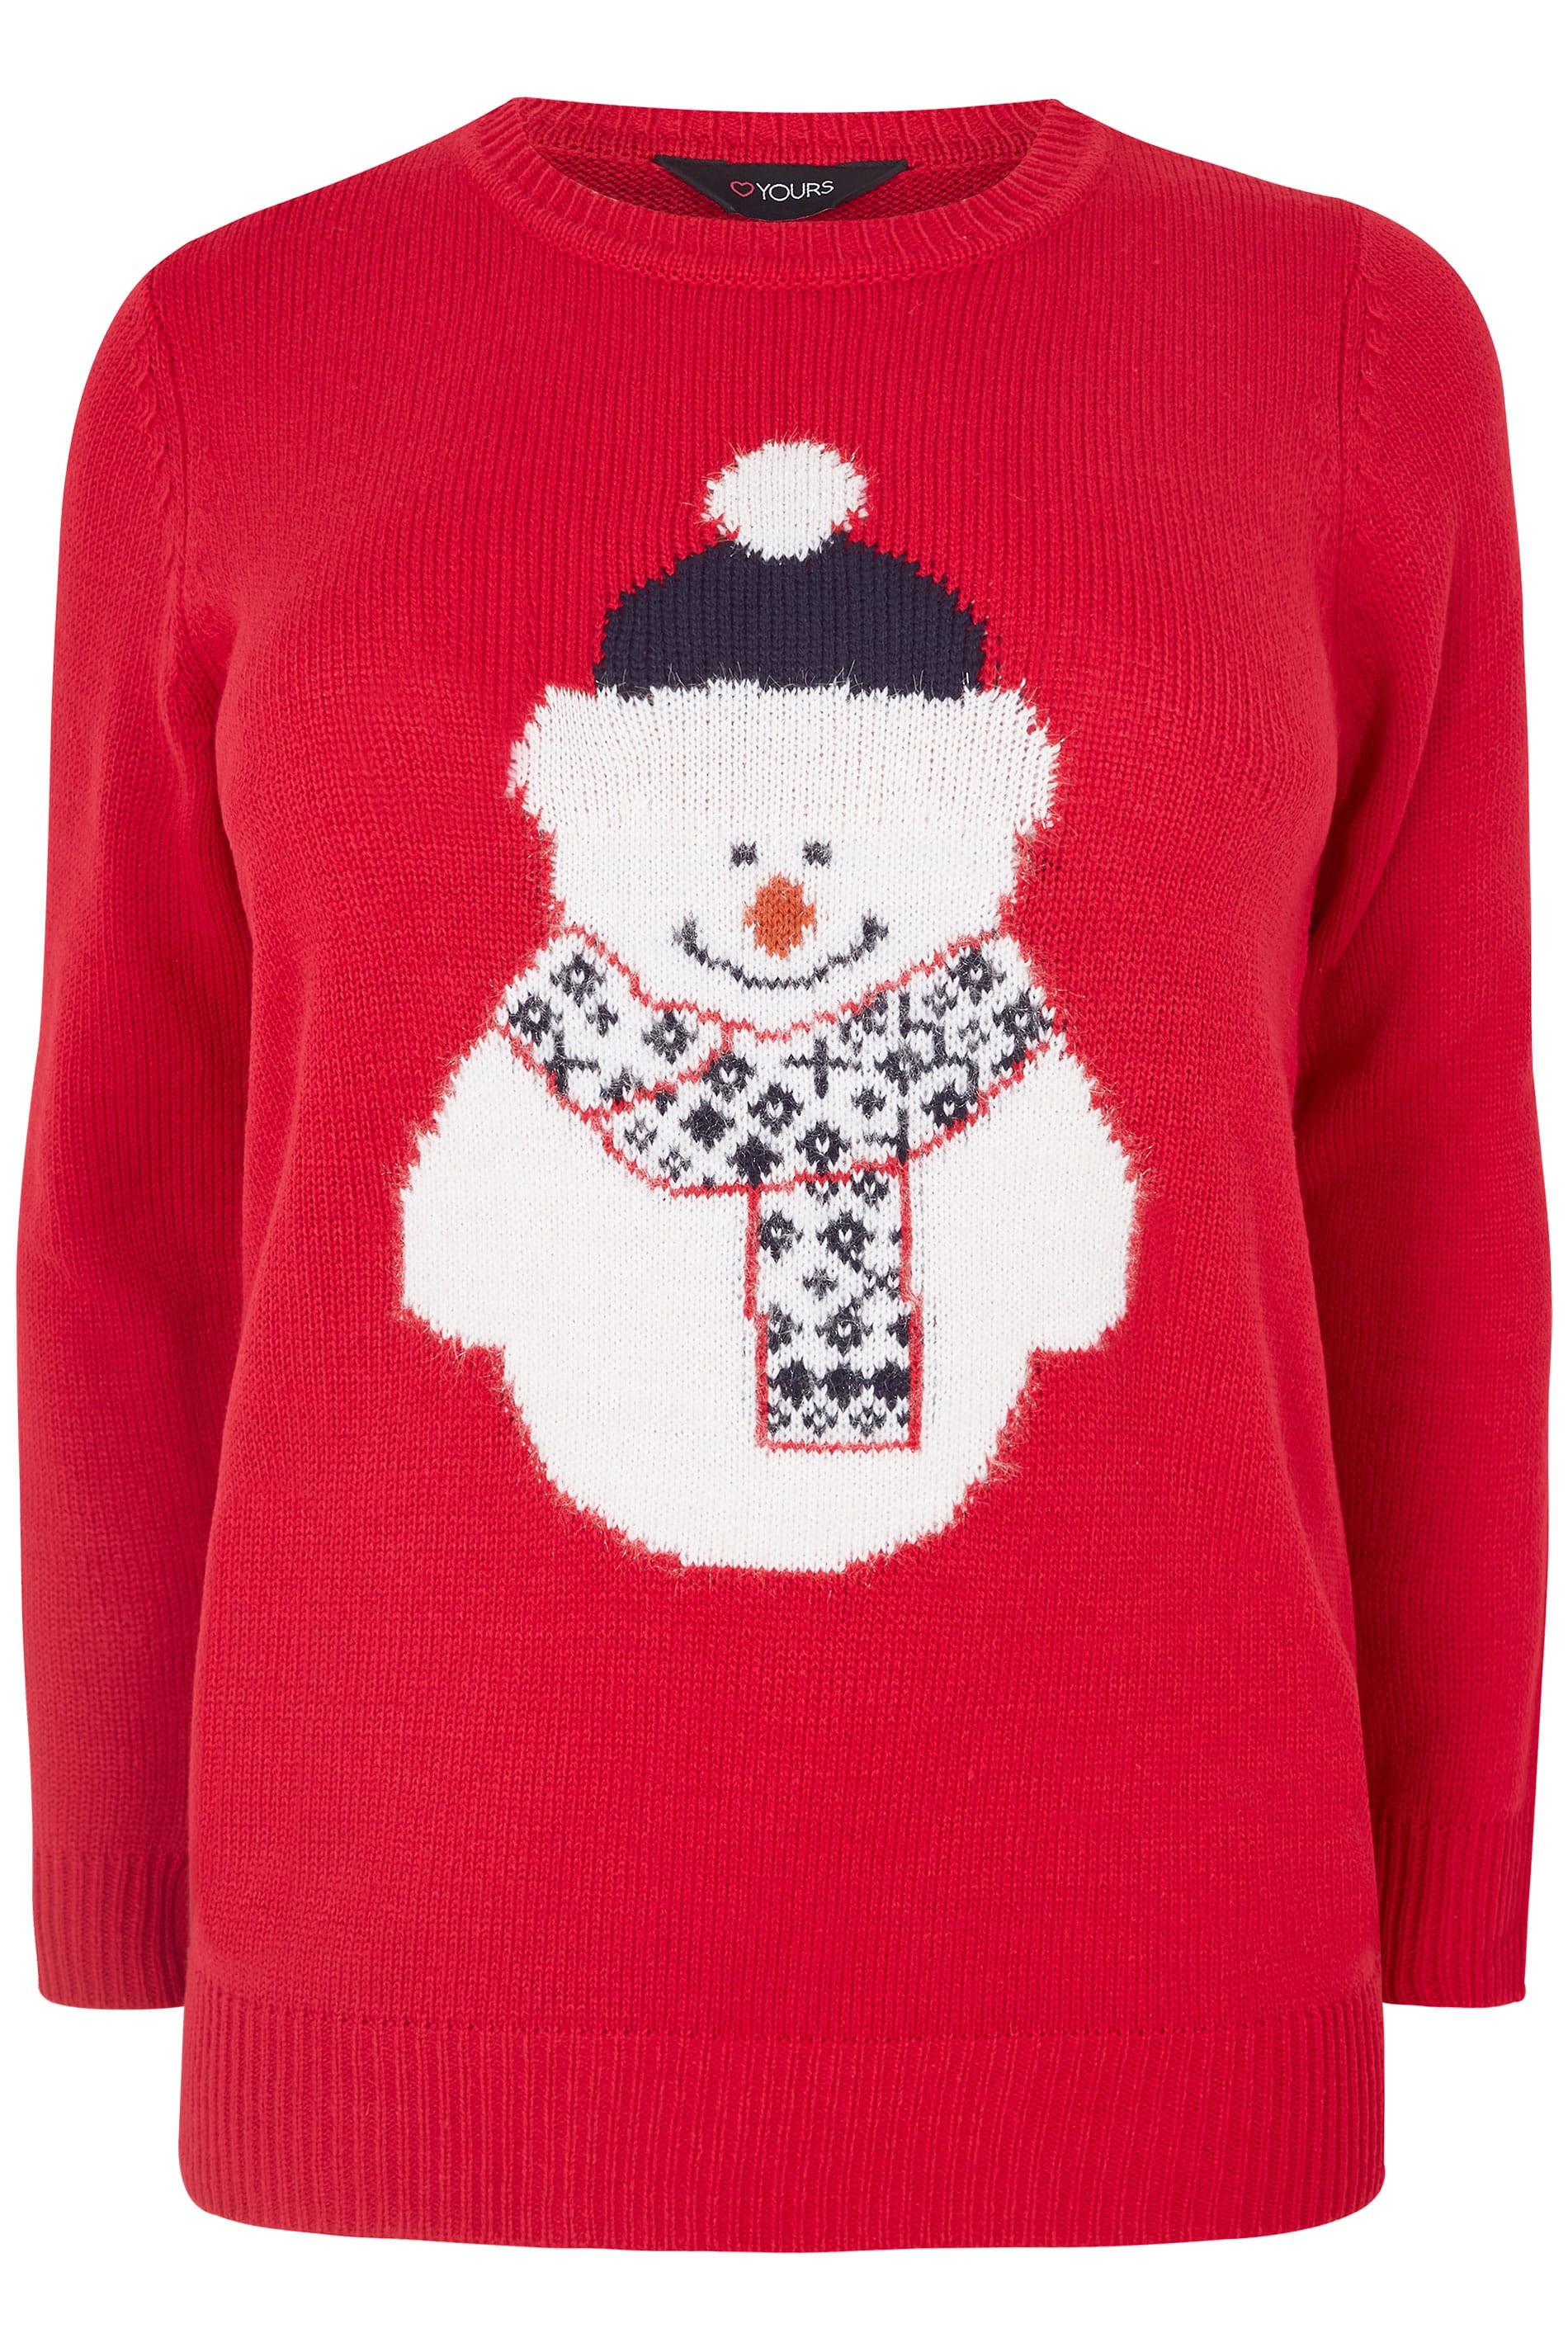 Kersttrui 68.Red Snowman Christmas Jumper Plus Size 16 To 36